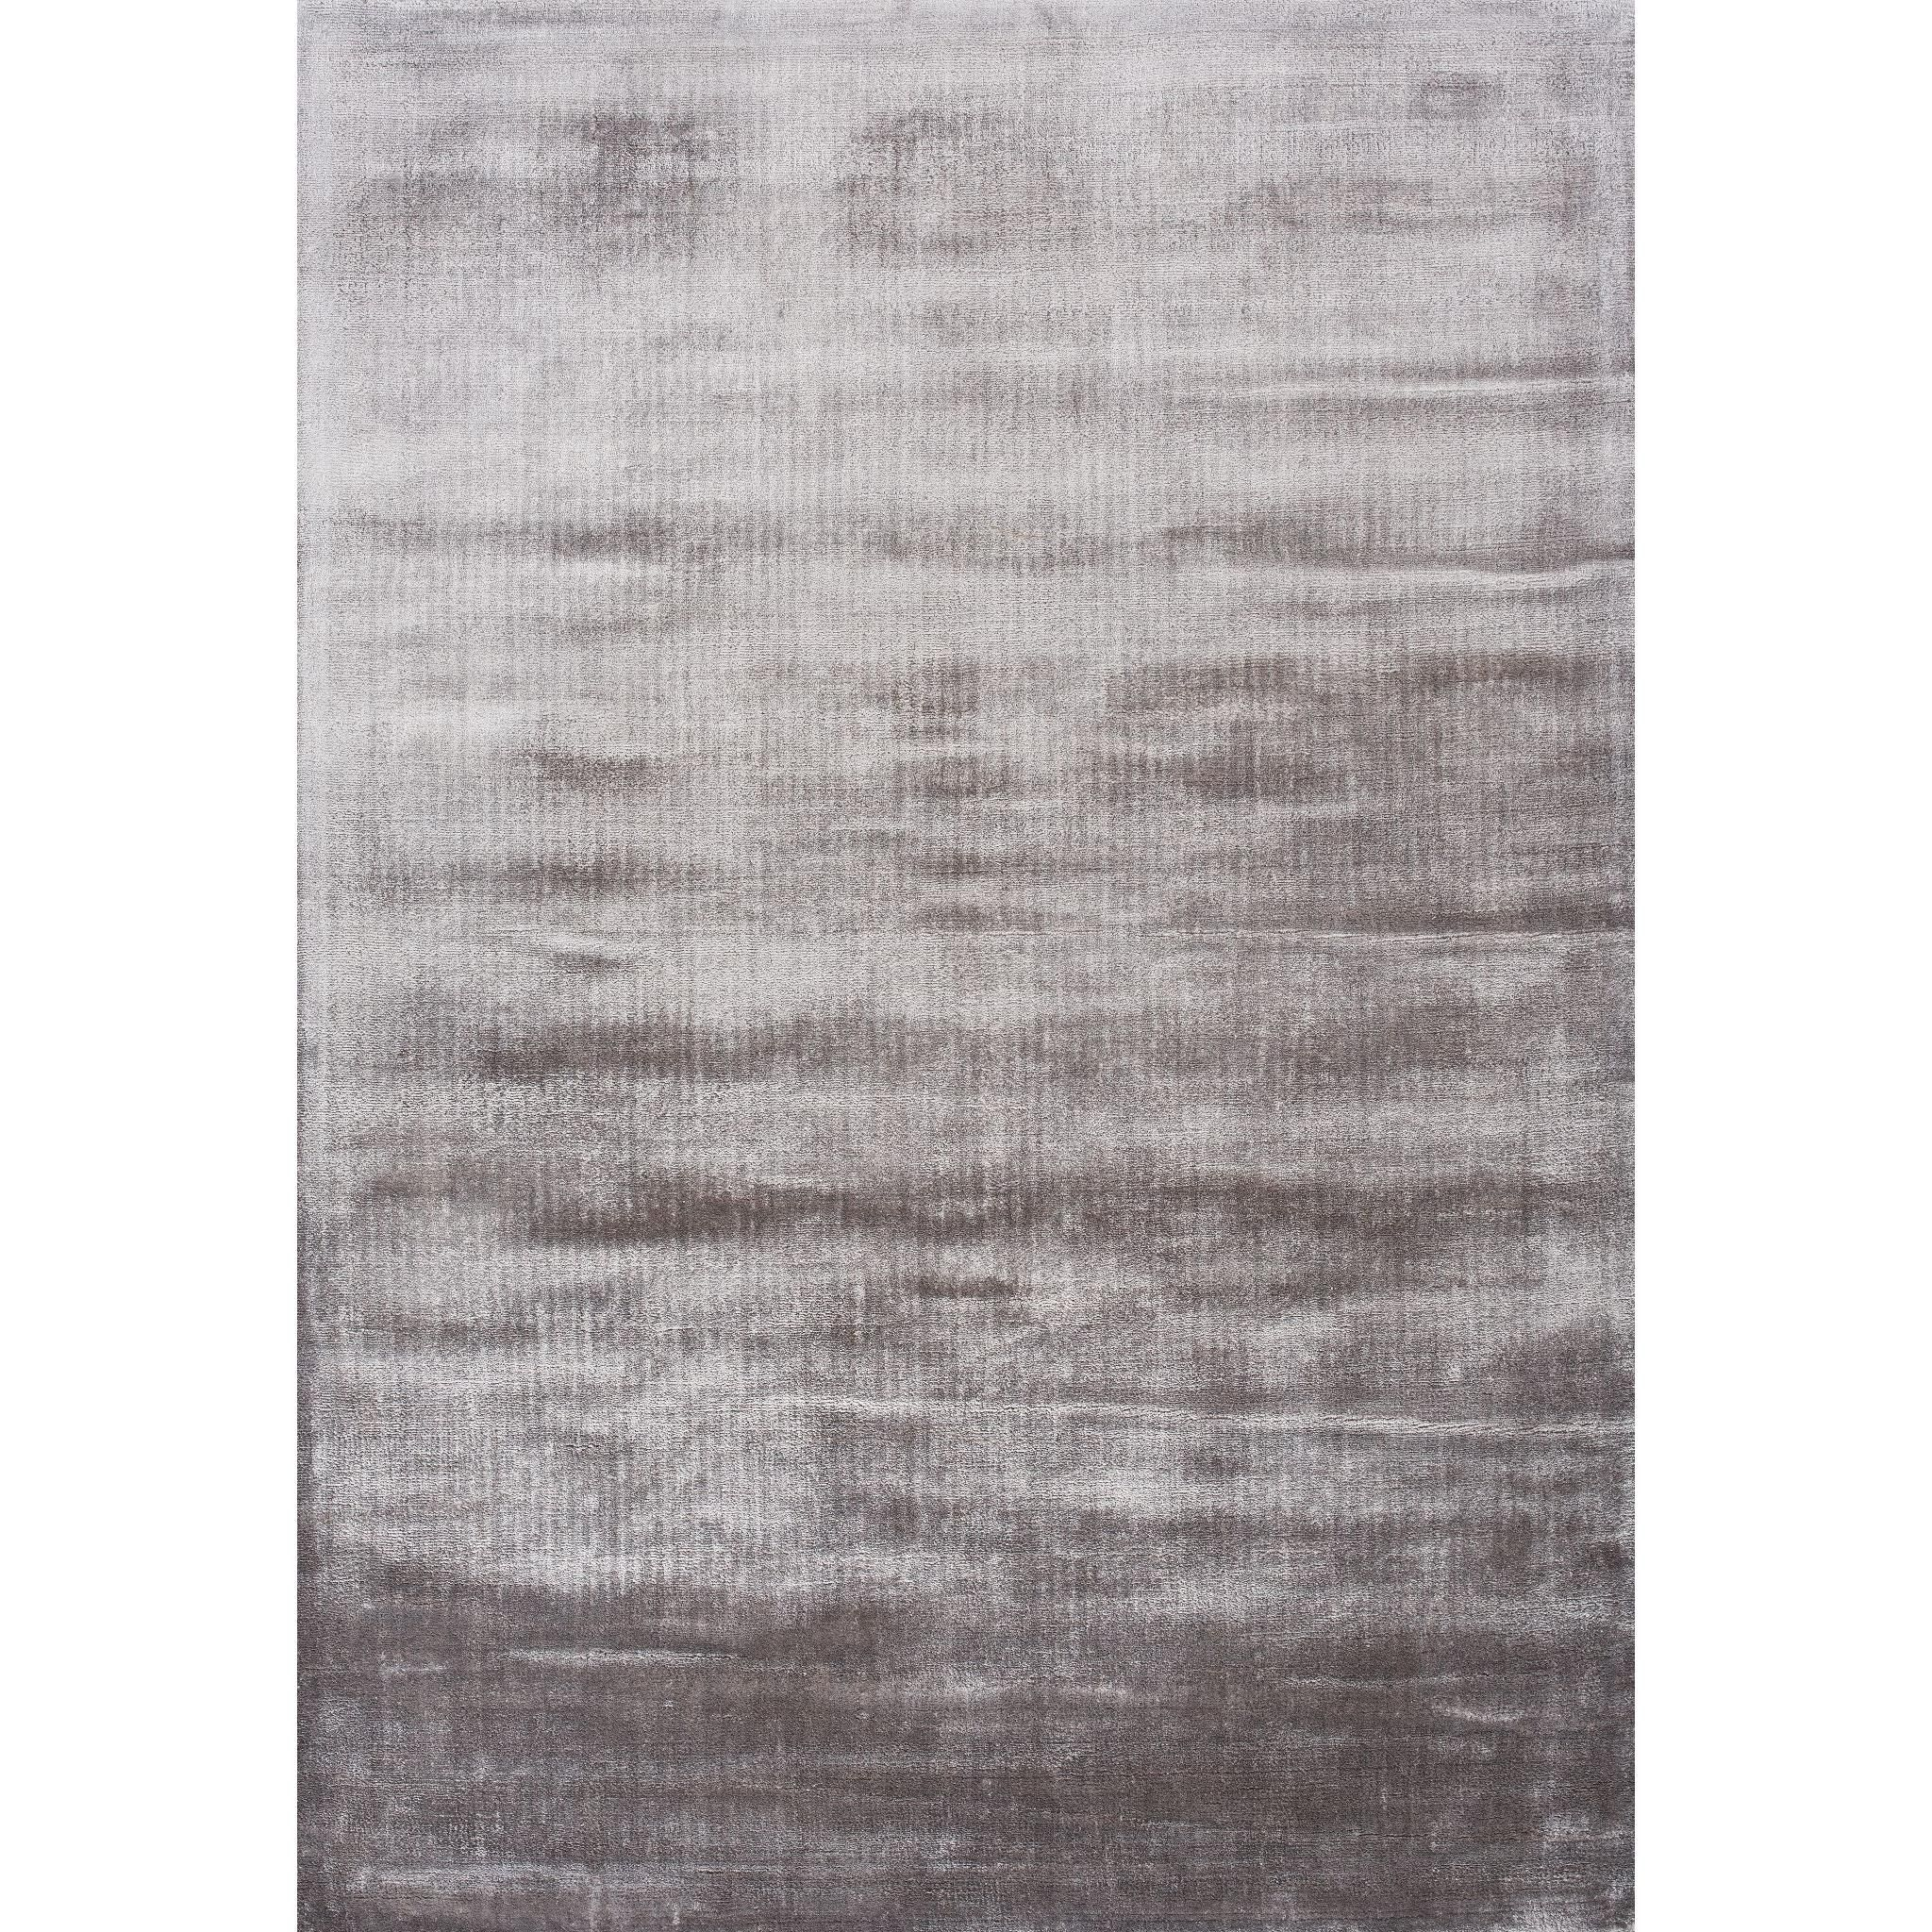 Lucens Silver 5 7 X7 9 Area Rug By Linie Design Rugs Area Rugs